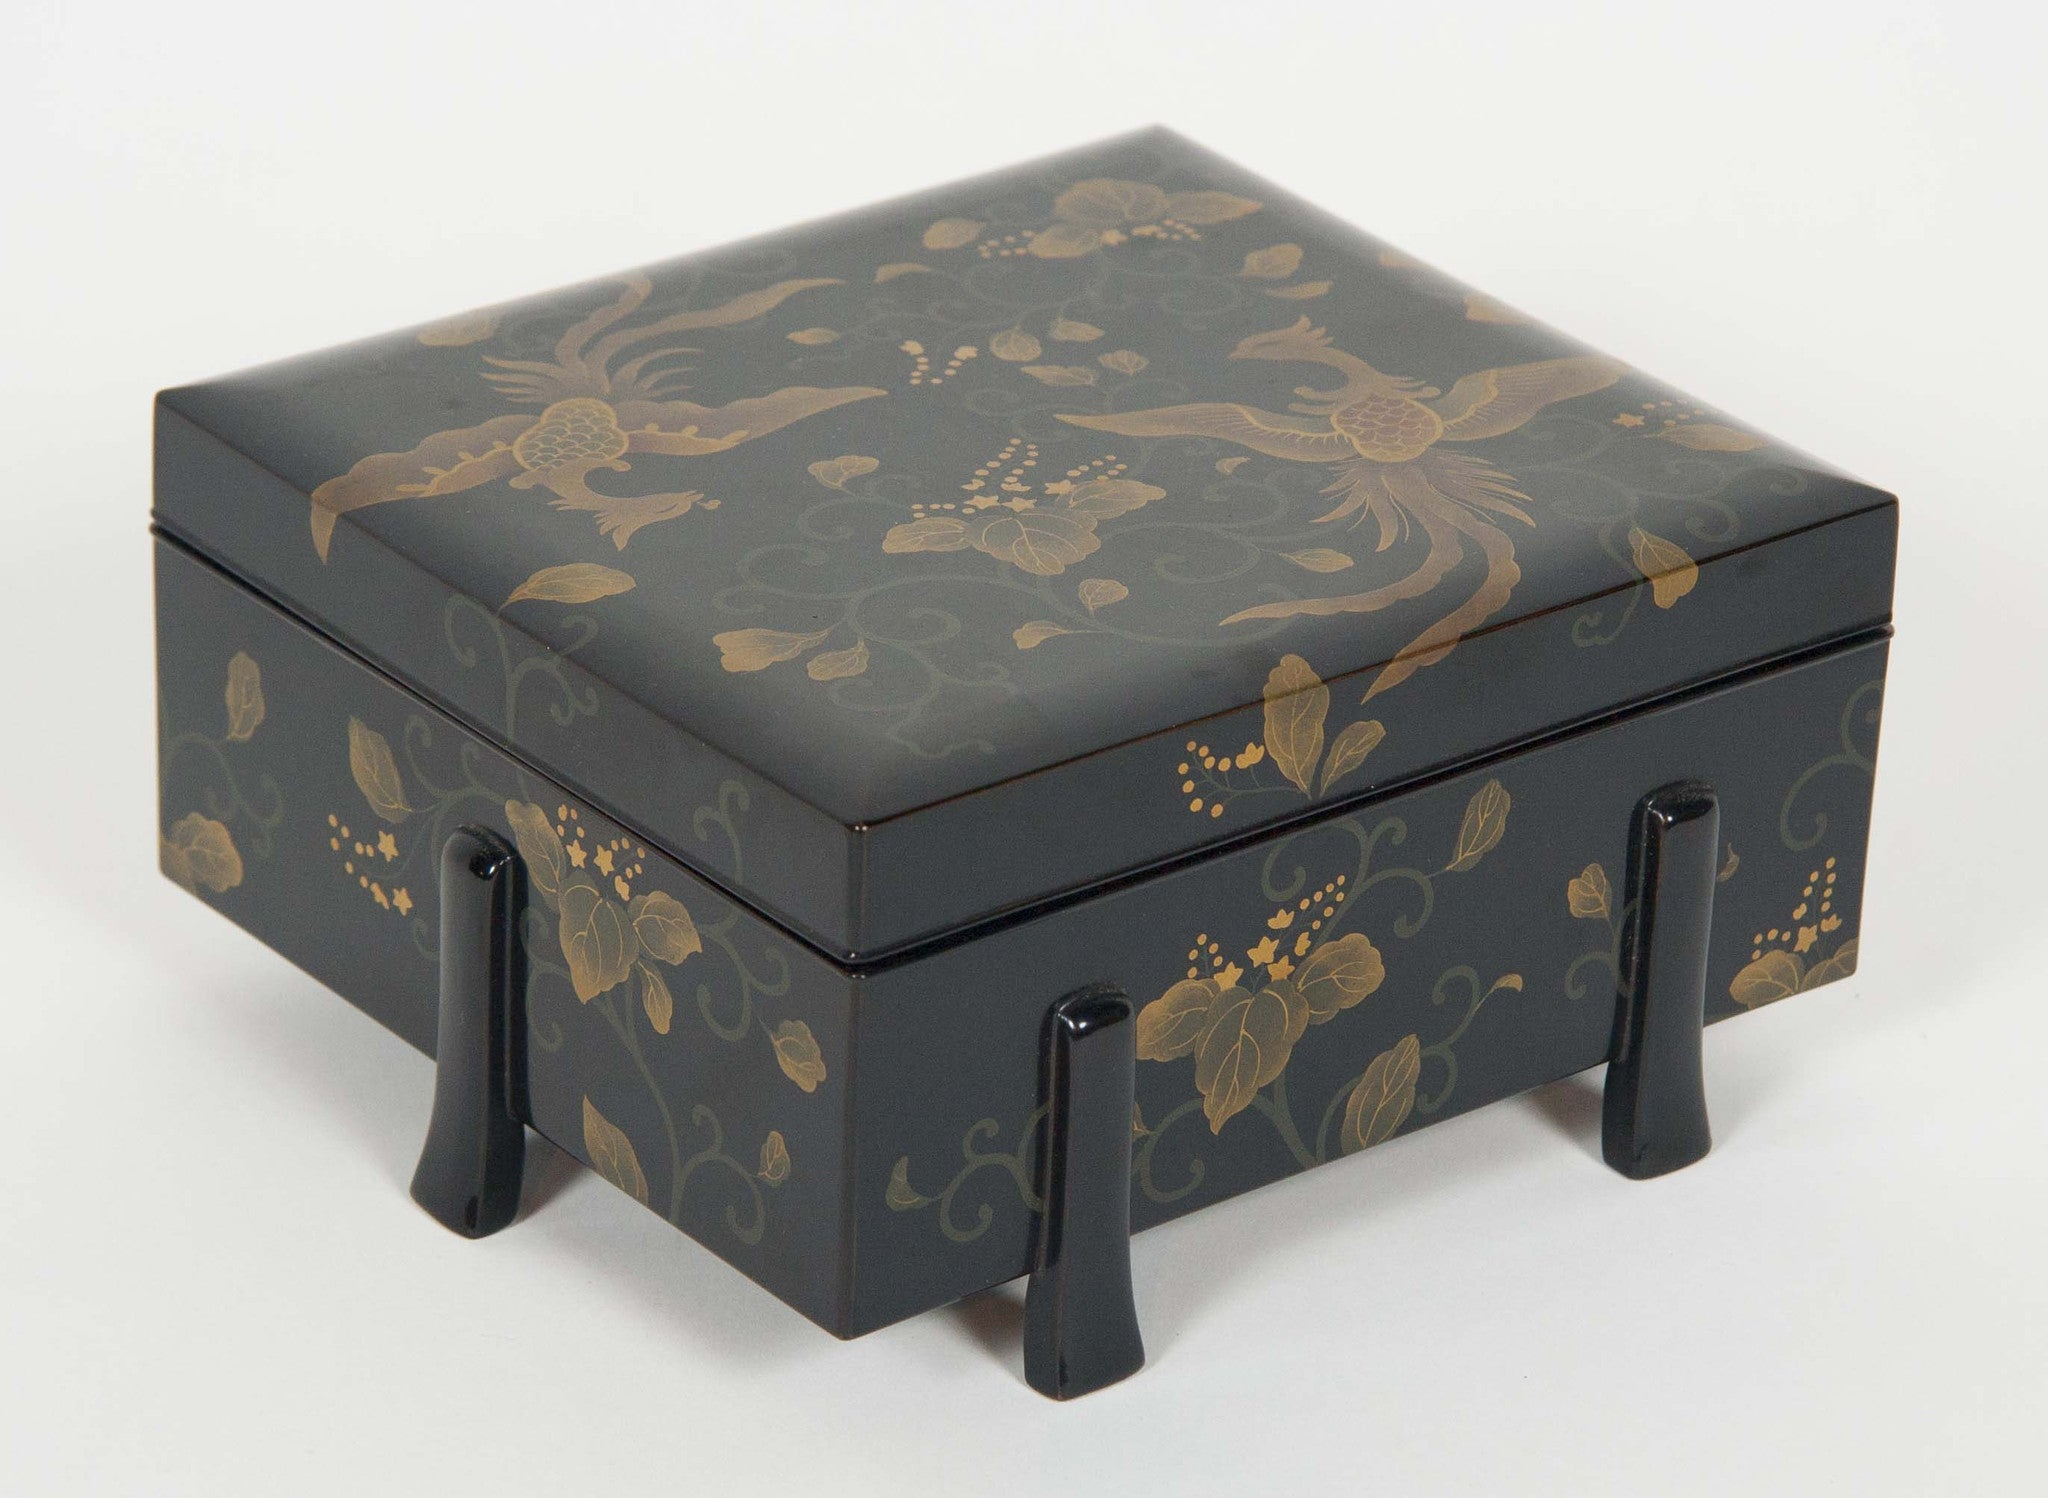 Six-Footed Black and Gold Lacquered Box